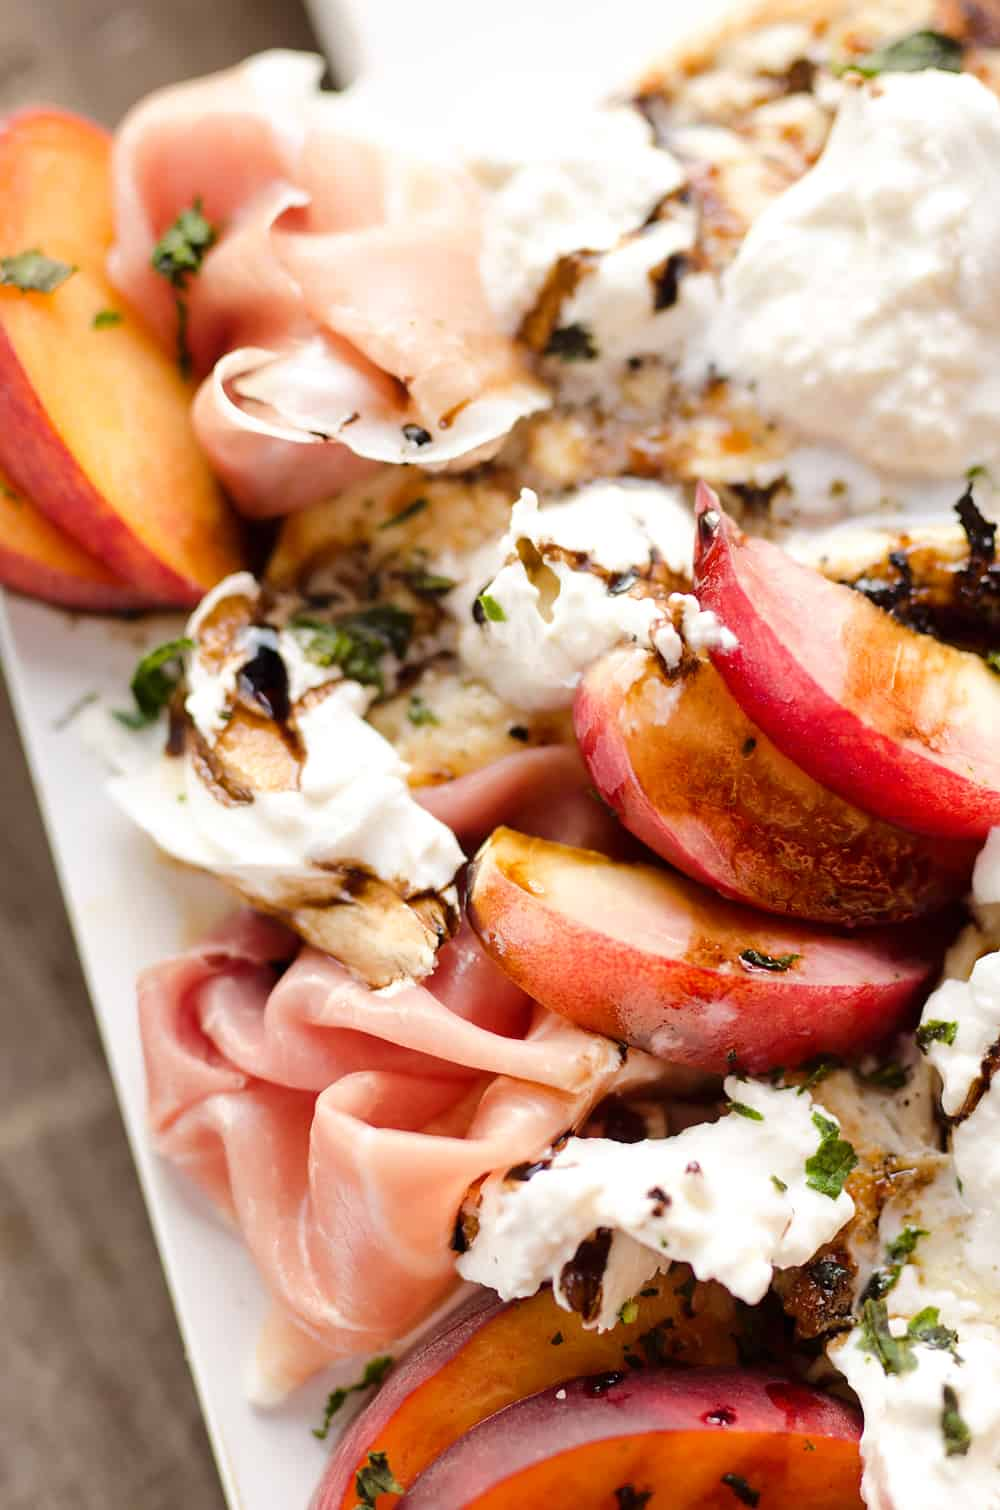 Balsamic Chicken with Peaches & Prosciutto is a deliciously simple and healthy dinner made on the grill in just 10 minutes! Grilled chicken is topped with fresh peaches and burrata cheese and finished off with a balsamic reduction and basil for a combination of flavors you will love.